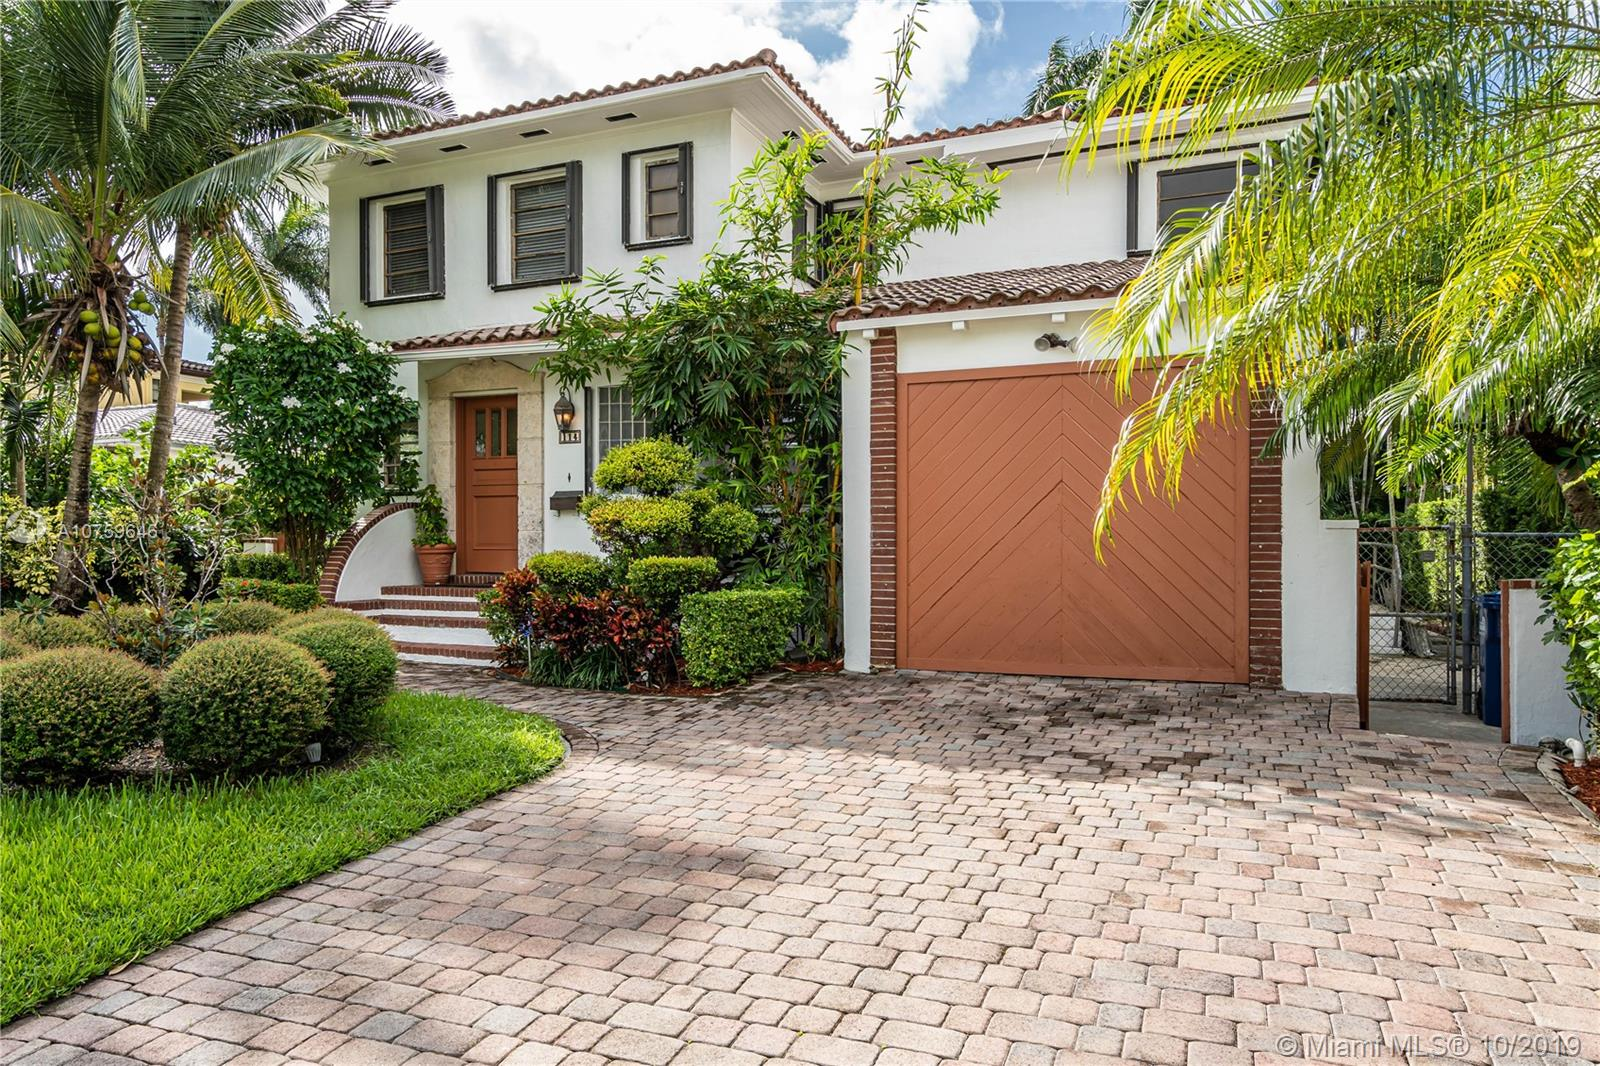 Details for 114 2nd San Marino Ter, Miami Beach, FL 33139